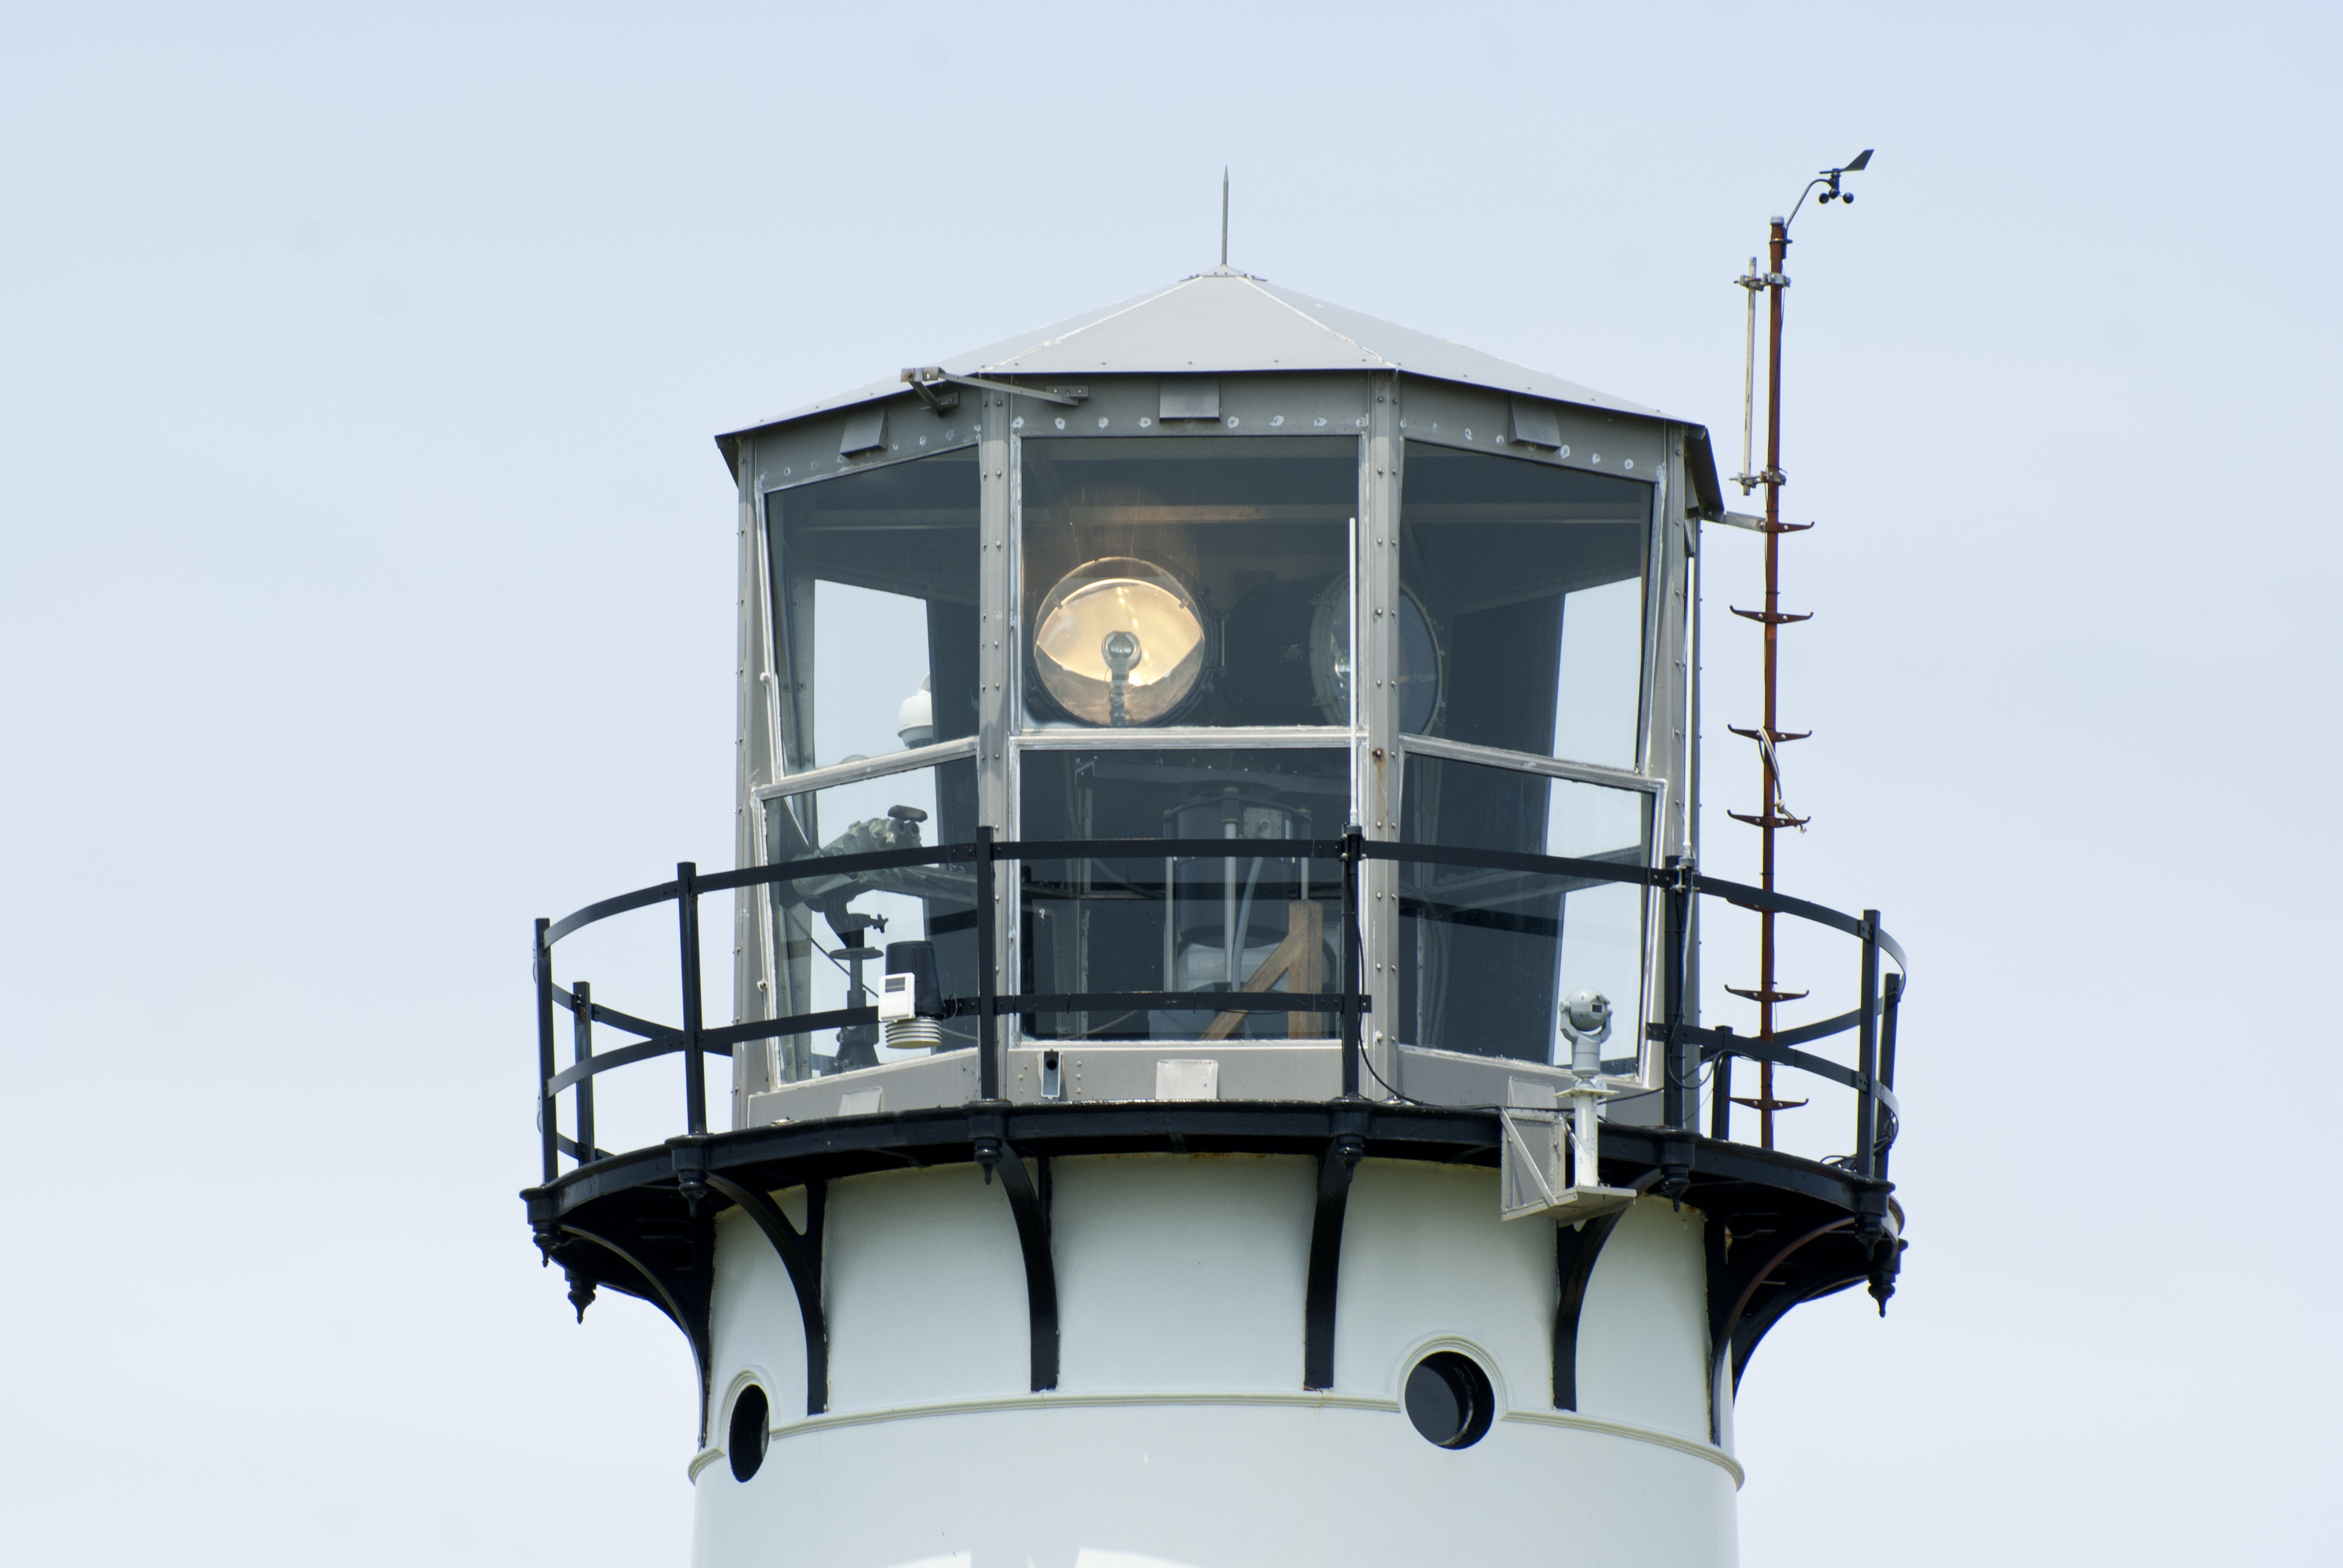 Top Of A Lighthouse, Architecture, Stone, Old, Outdoors, HQ Photo